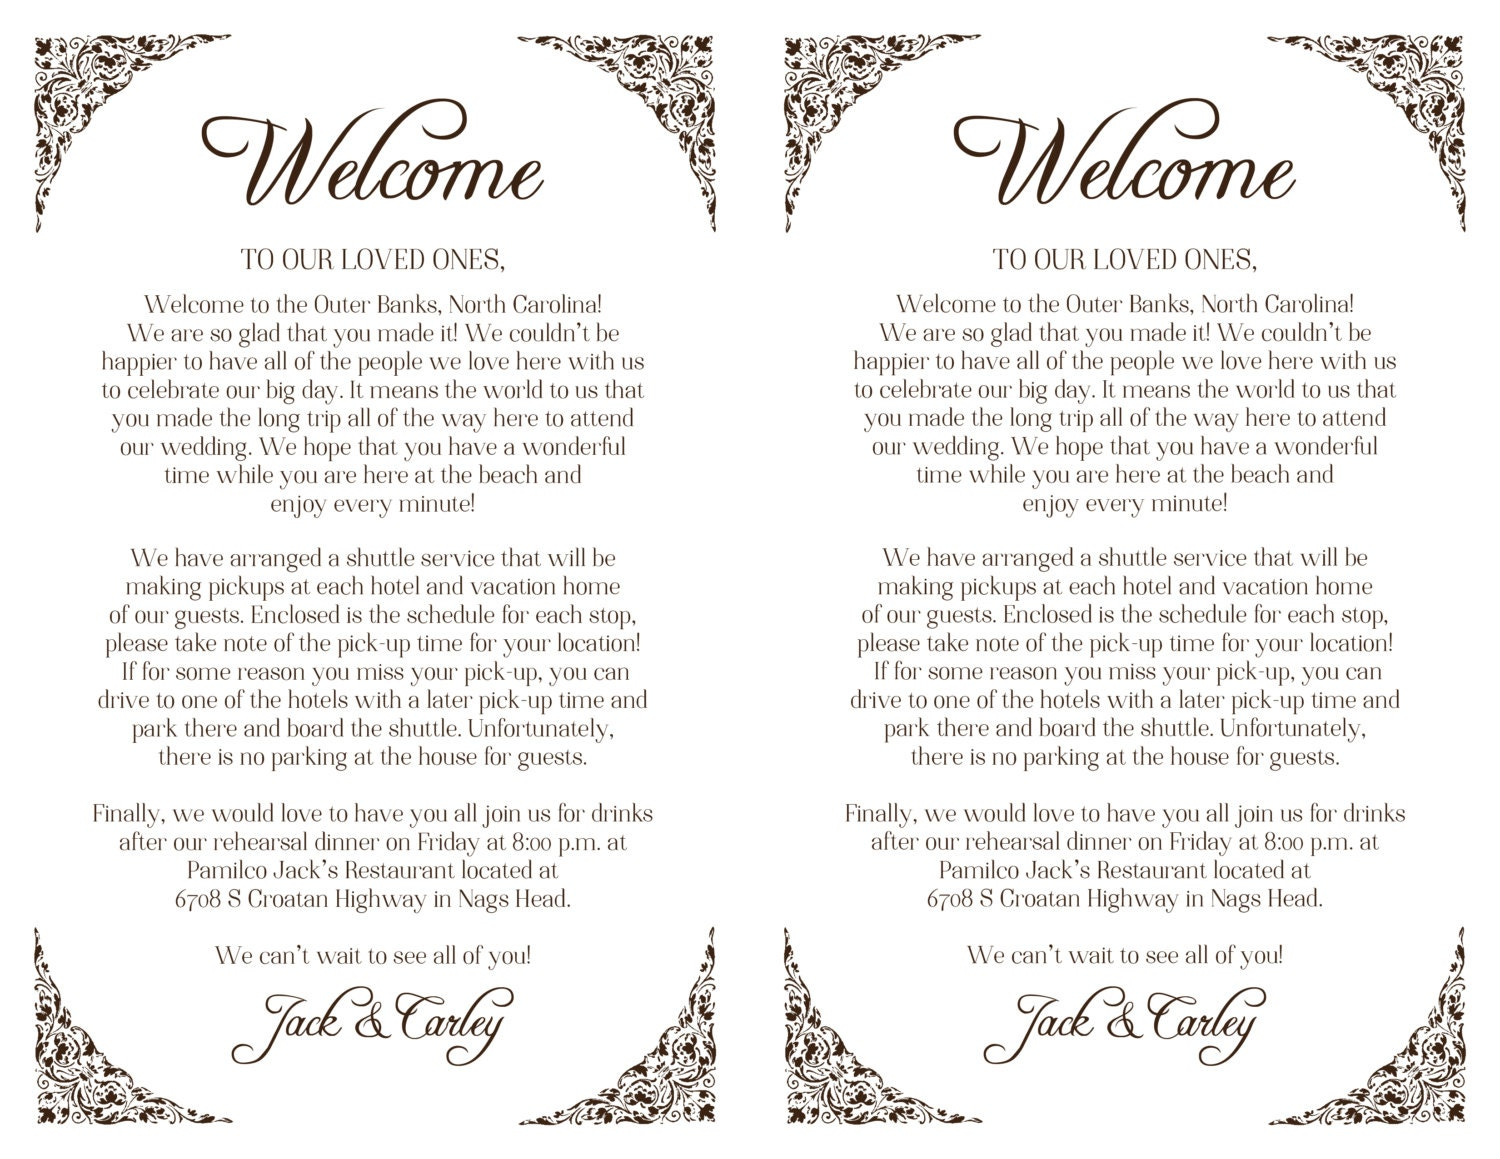 Custom Wedding Welcome Letter Floral Border Printable DIY